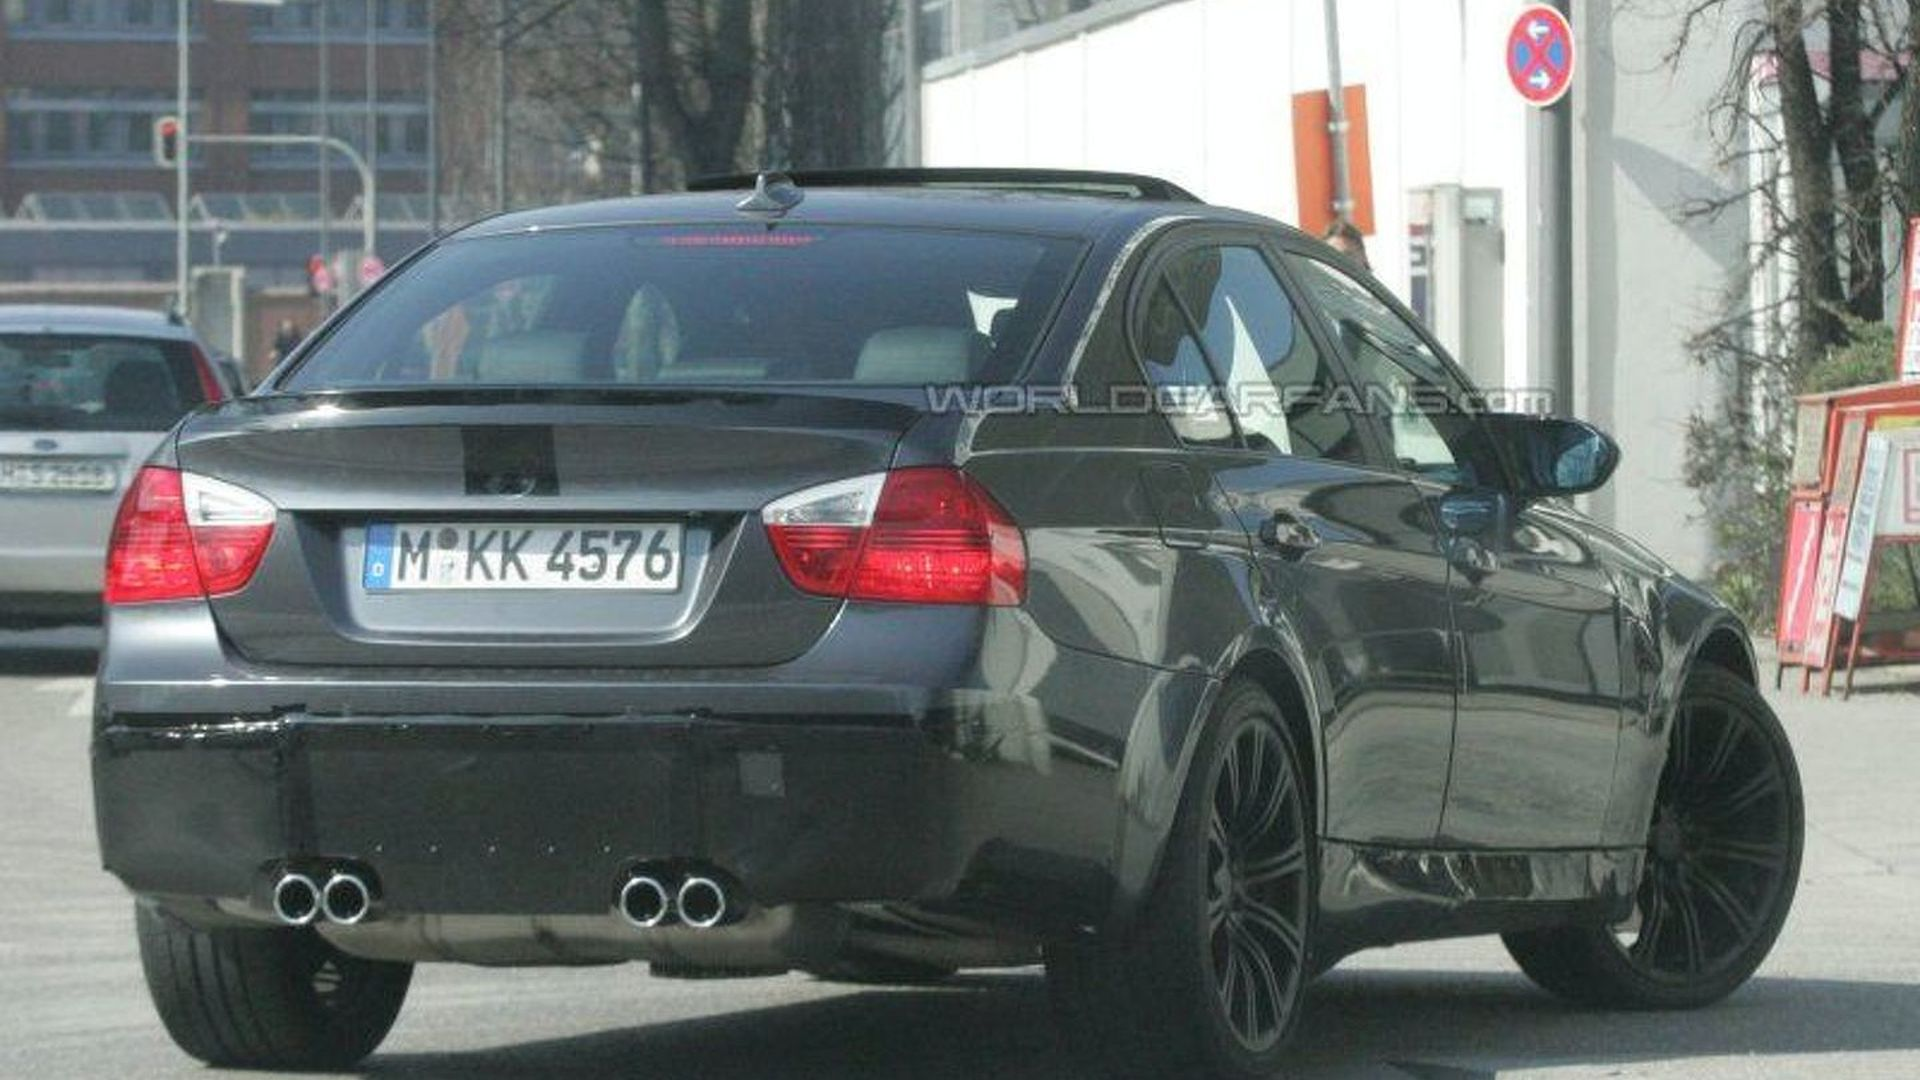 SPY PHOTOS: More BMW M3 Four Door and Convertible